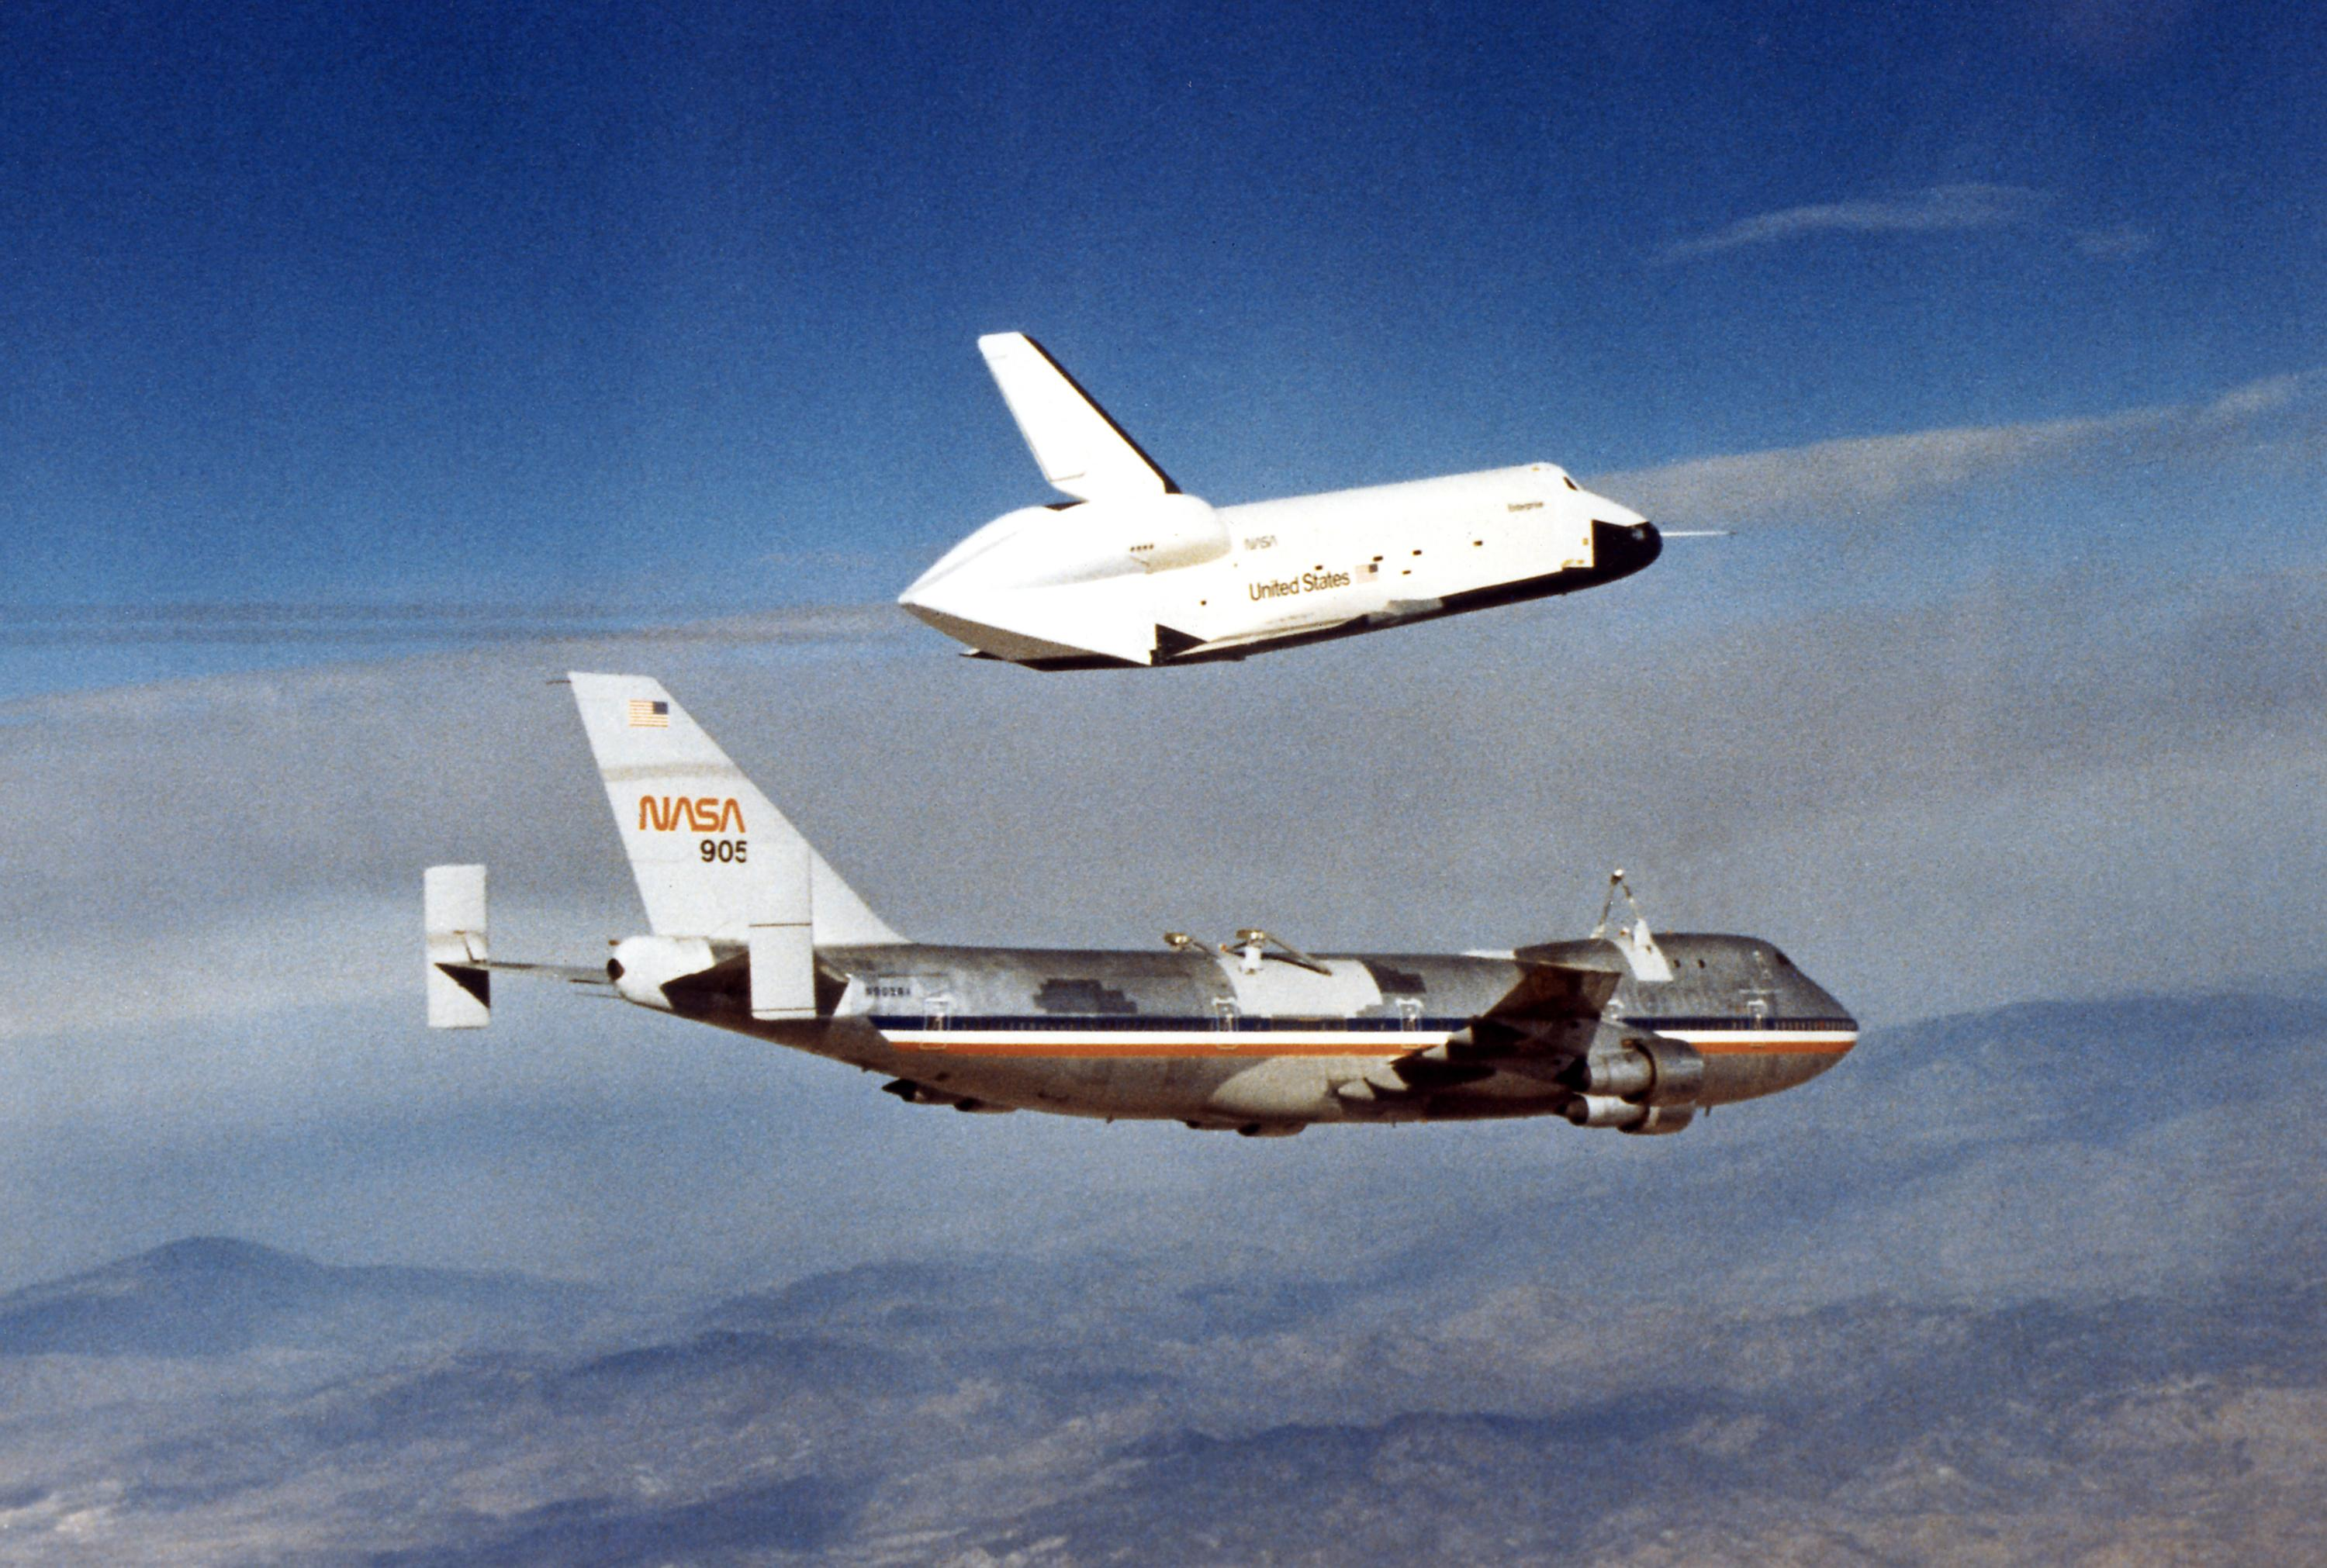 space shuttle usaf - photo #26